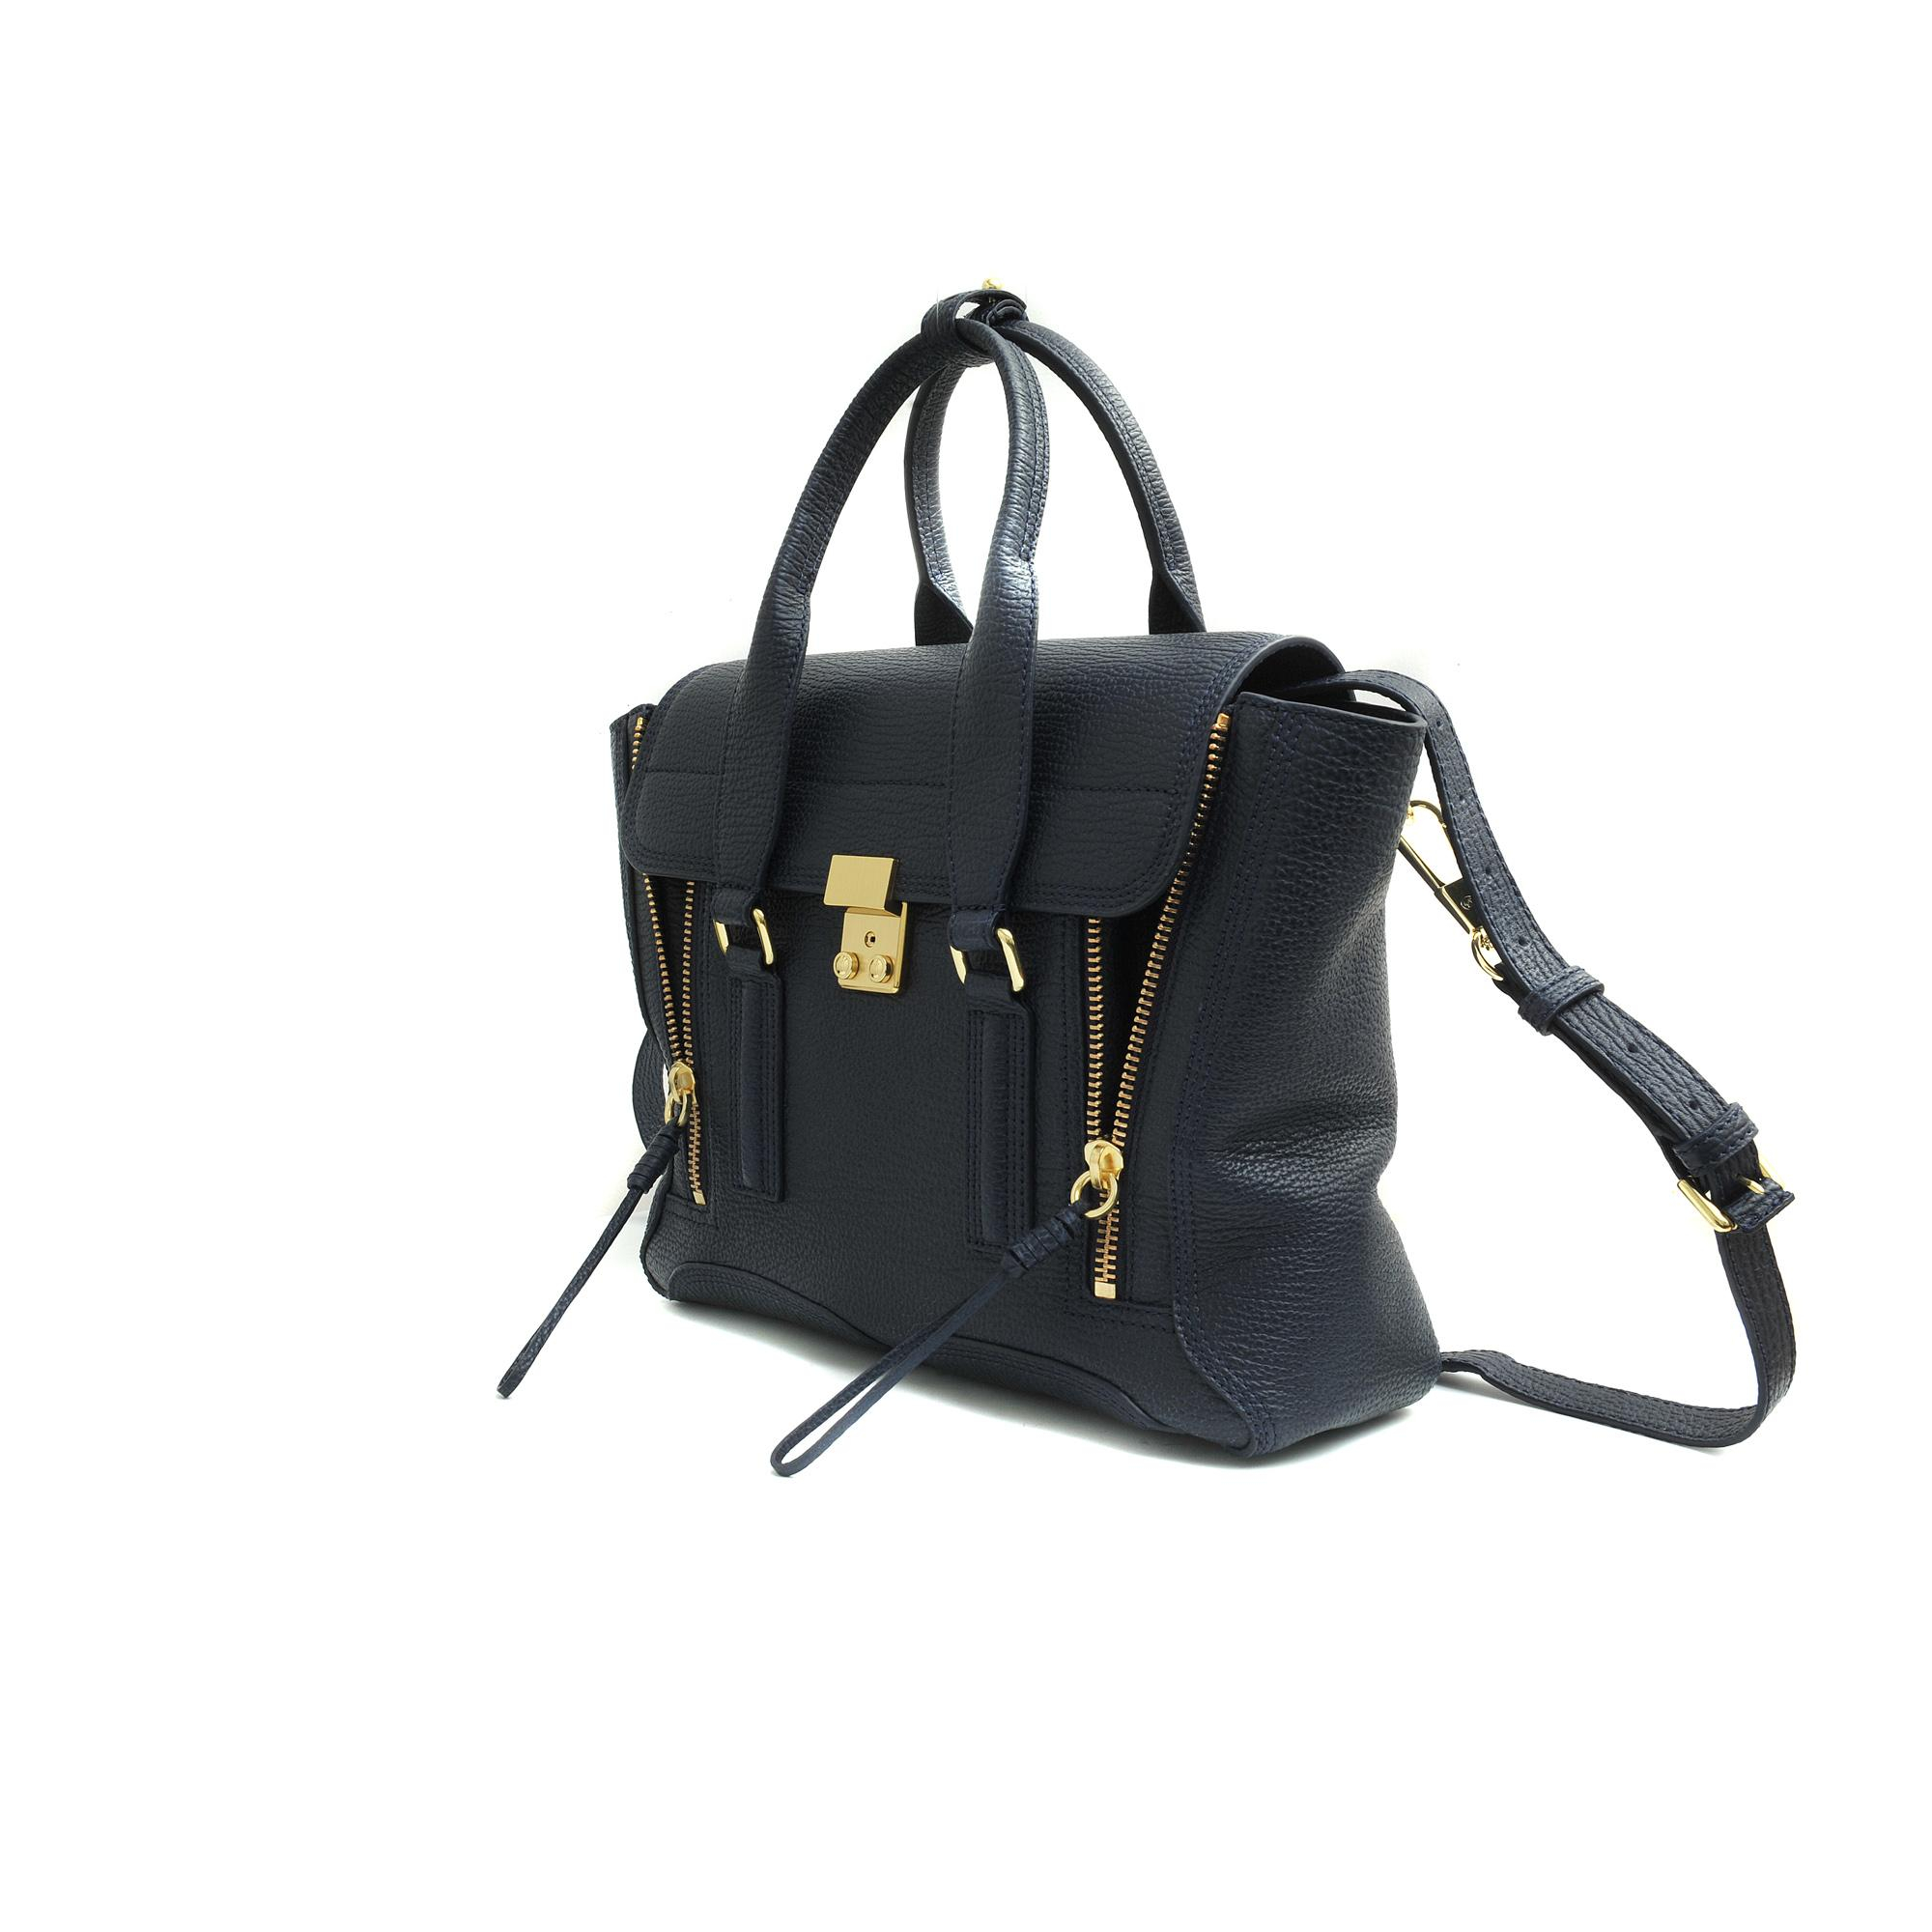 Luxury designer handbags eshop for women